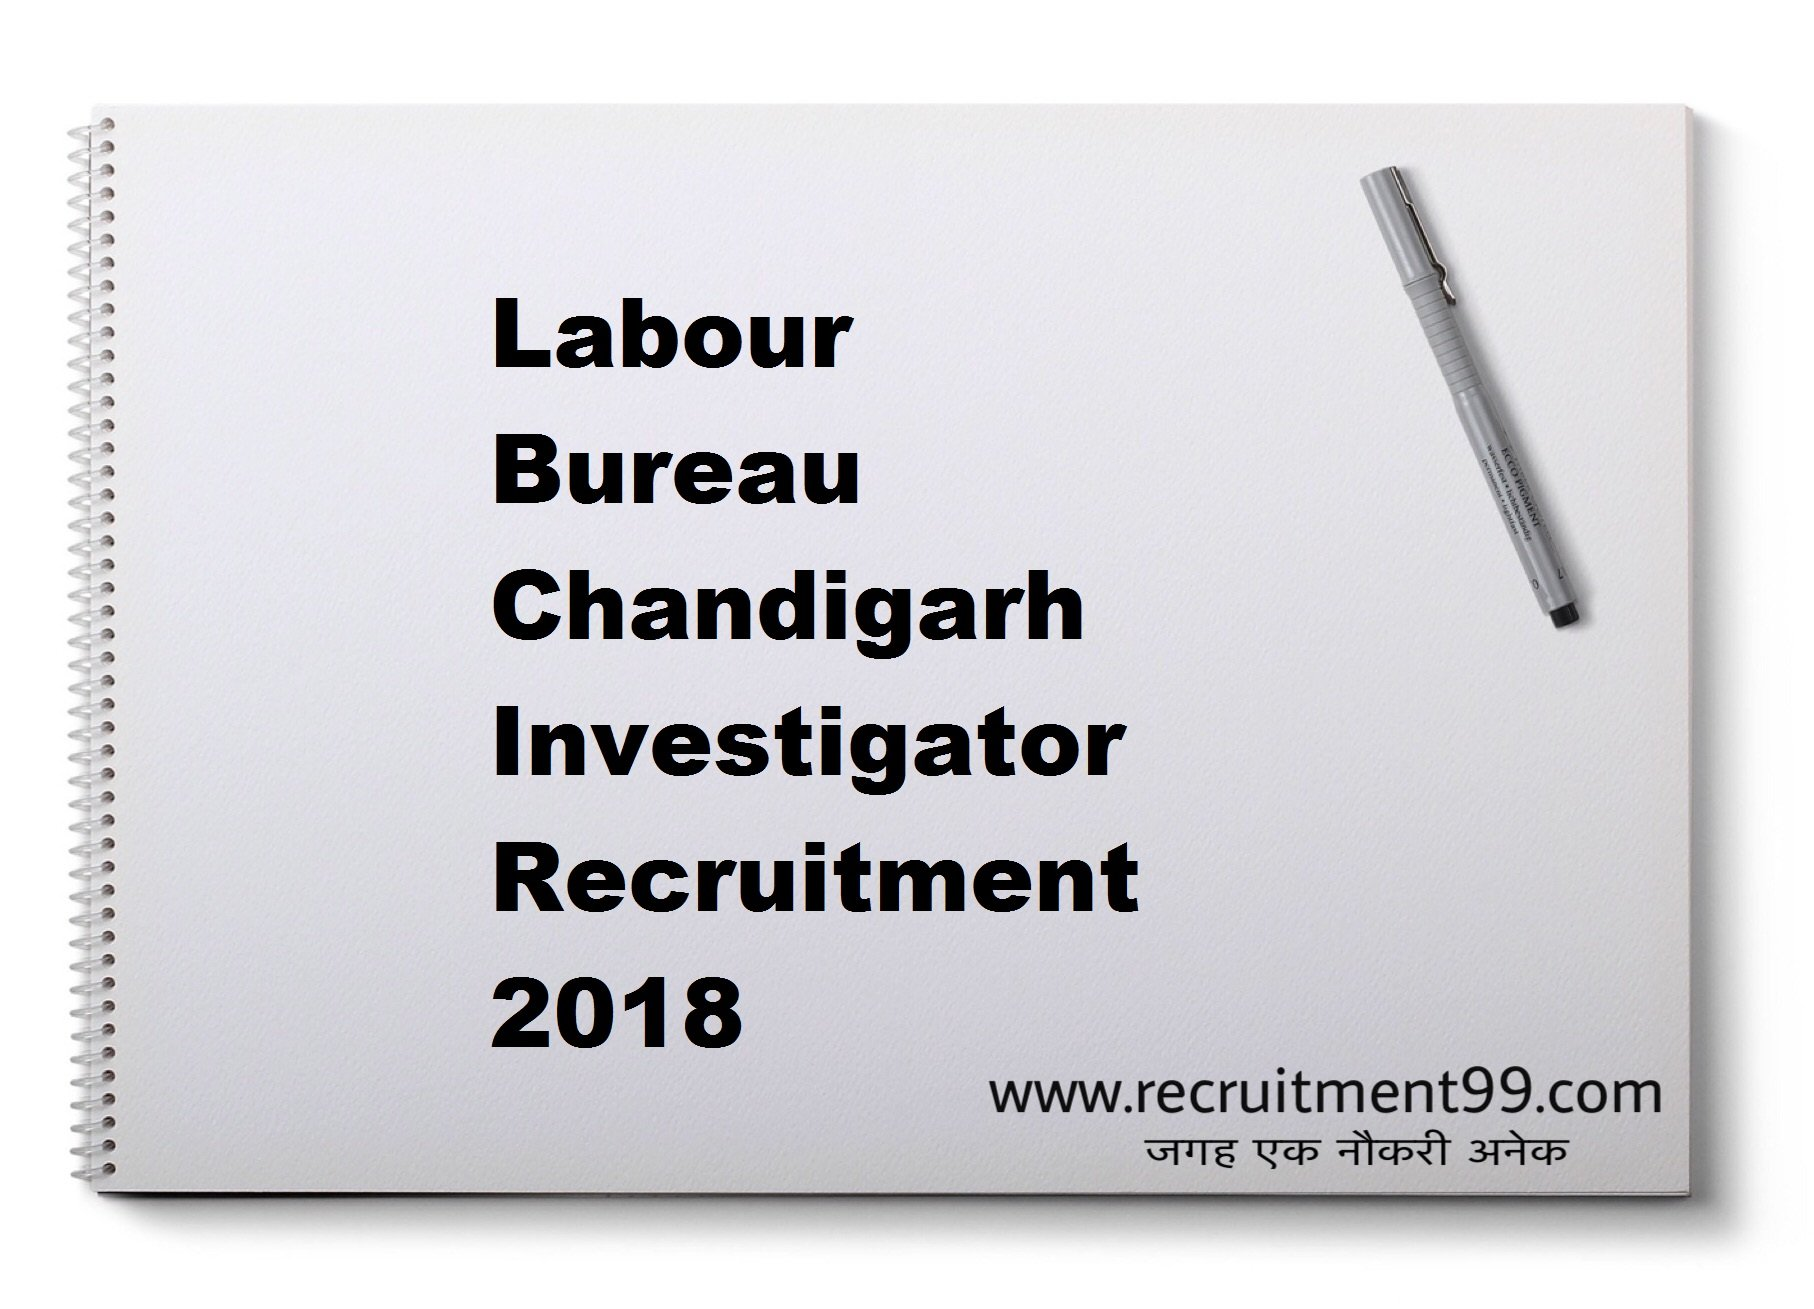 Labour Bureau Chandigarh Investigator Recruitment 2018